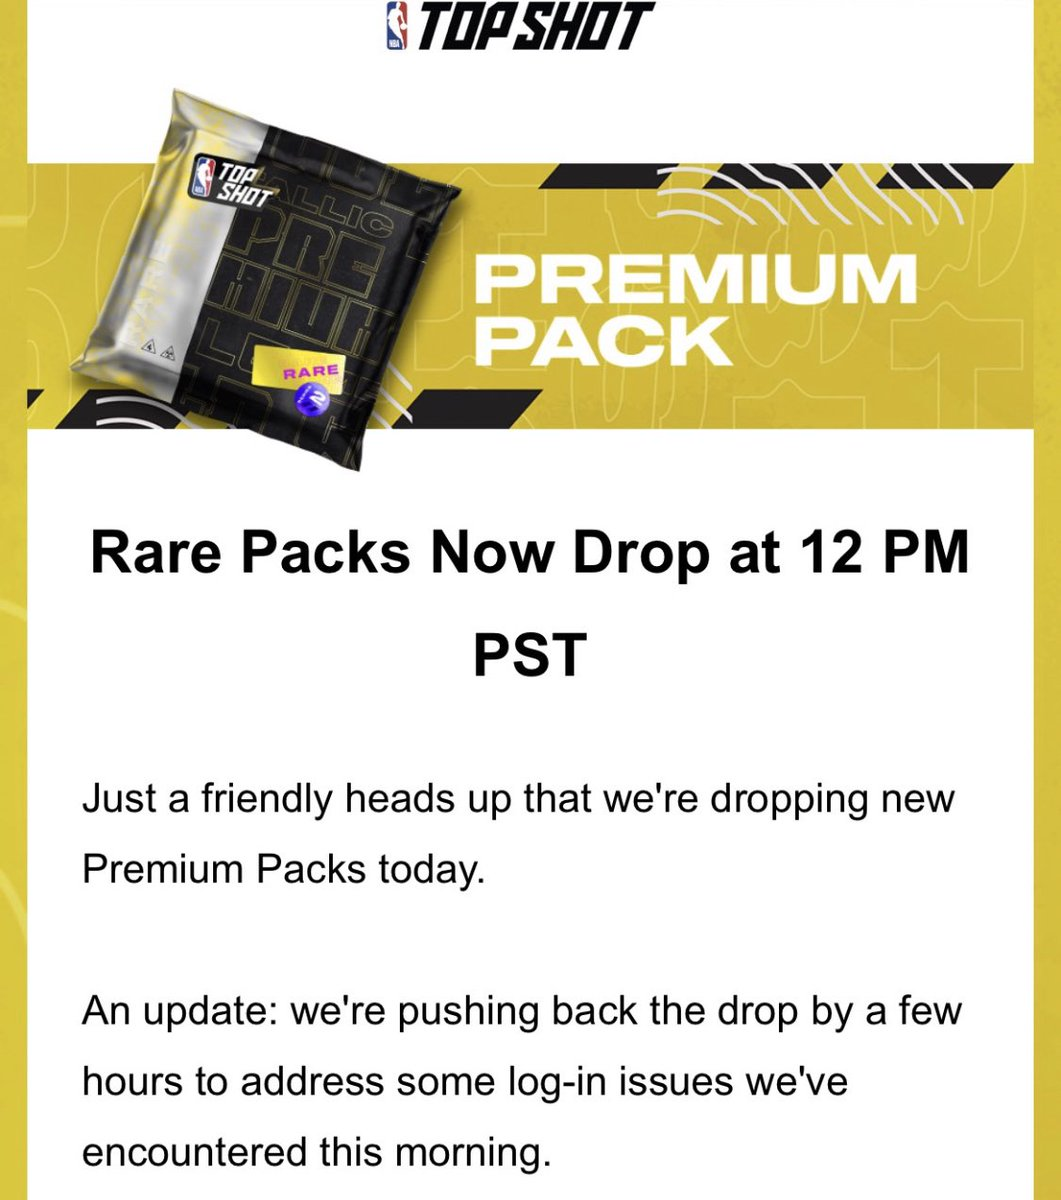 ".@nba_topshot has sent out an email pushing back today's Premium Pack drop to 12:00pm PT ""to address some log-in issues."""